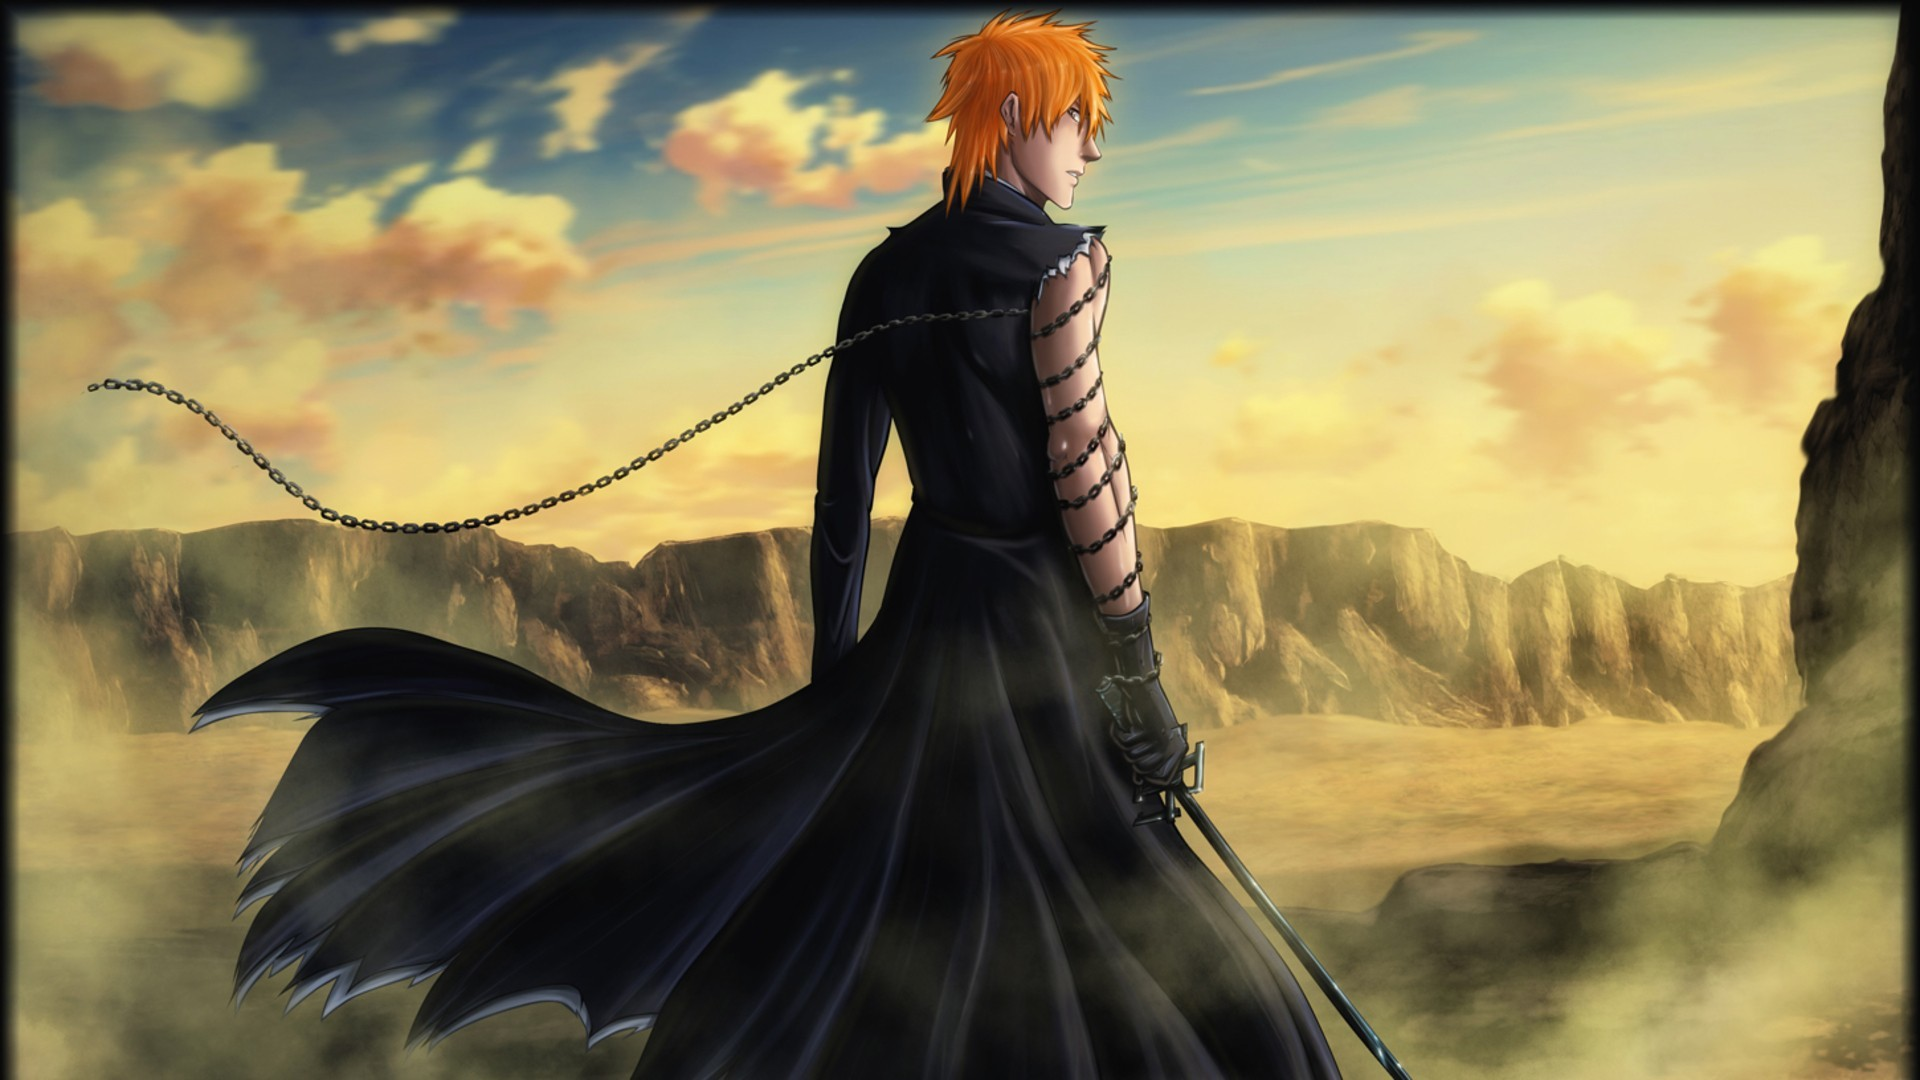 bleach wallpapers hd (62+ images)